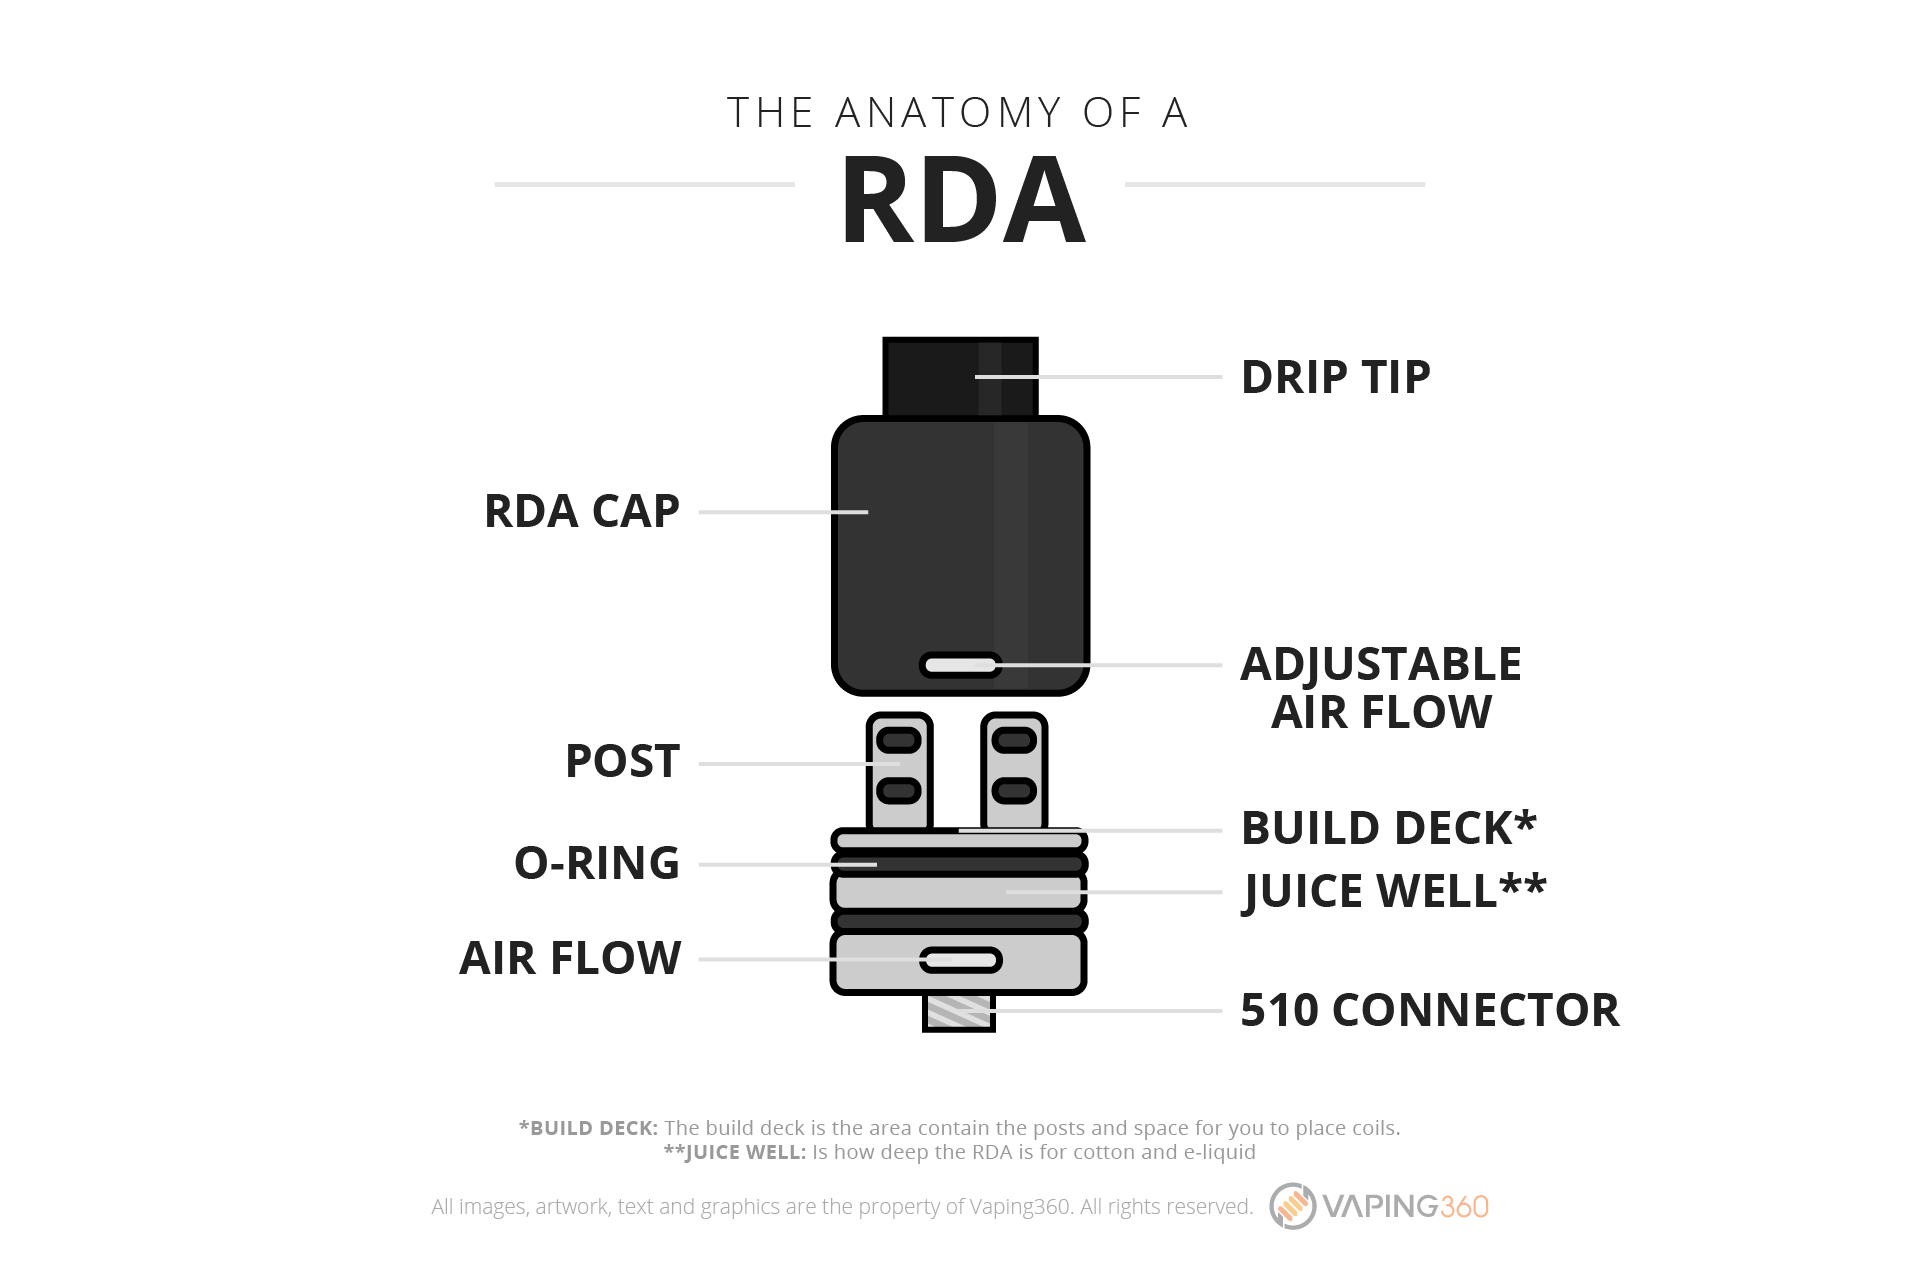 the-anatomy-of-a-rda